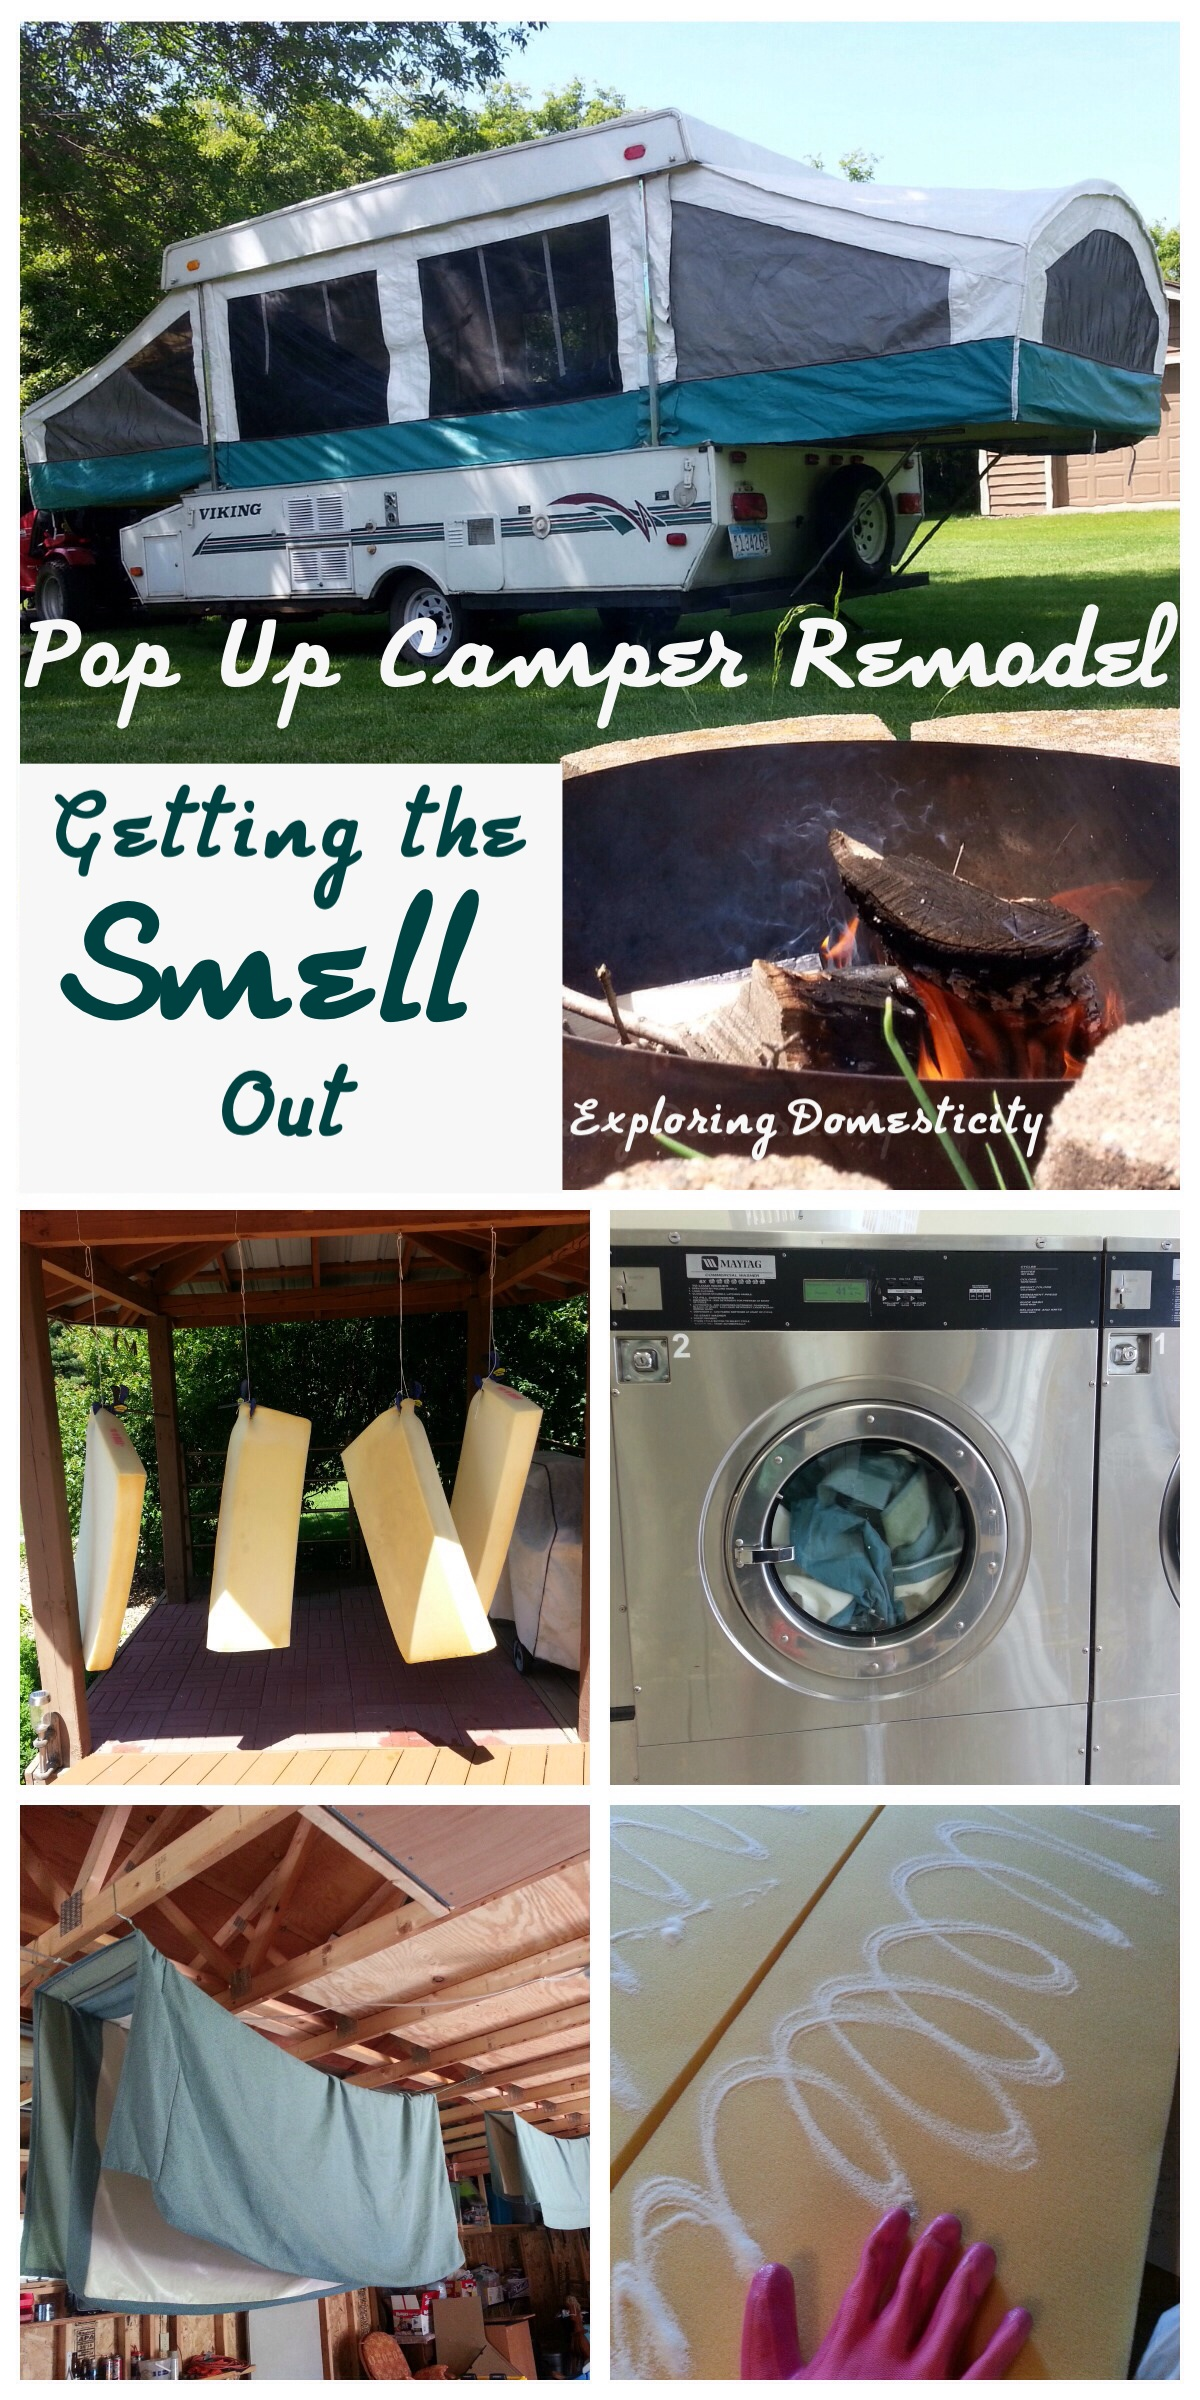 Pop Up Camper Remodel Getting The Smell Out Exploring